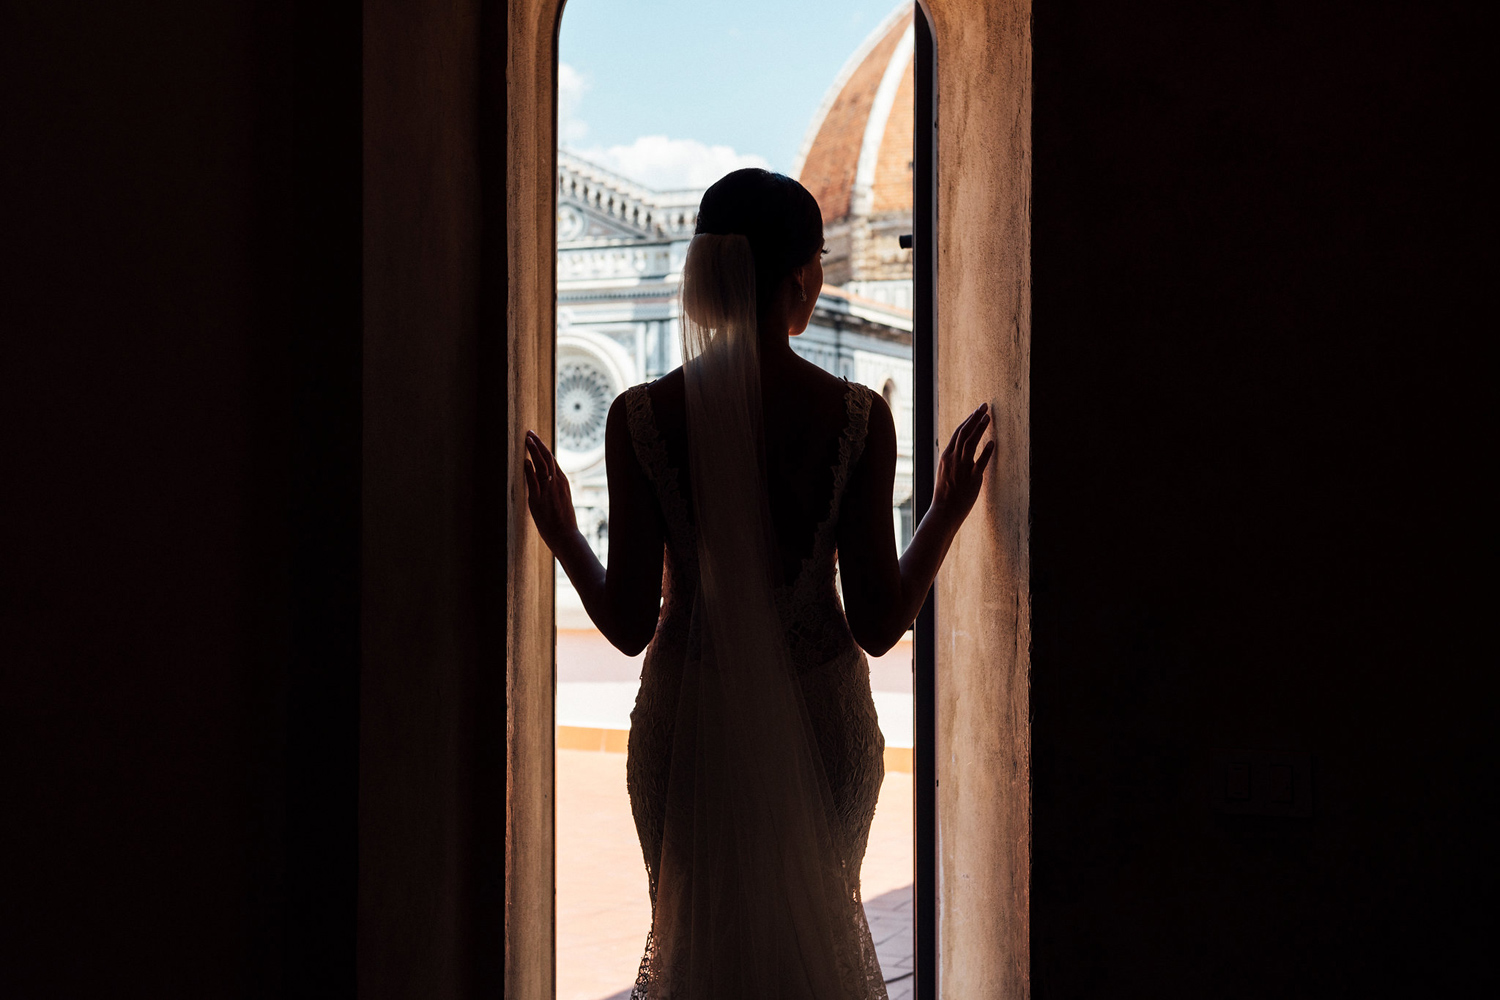 katie_mitchell_wedding_florence_tuscany_villa_di_miano_wedding_photography_11.jpg